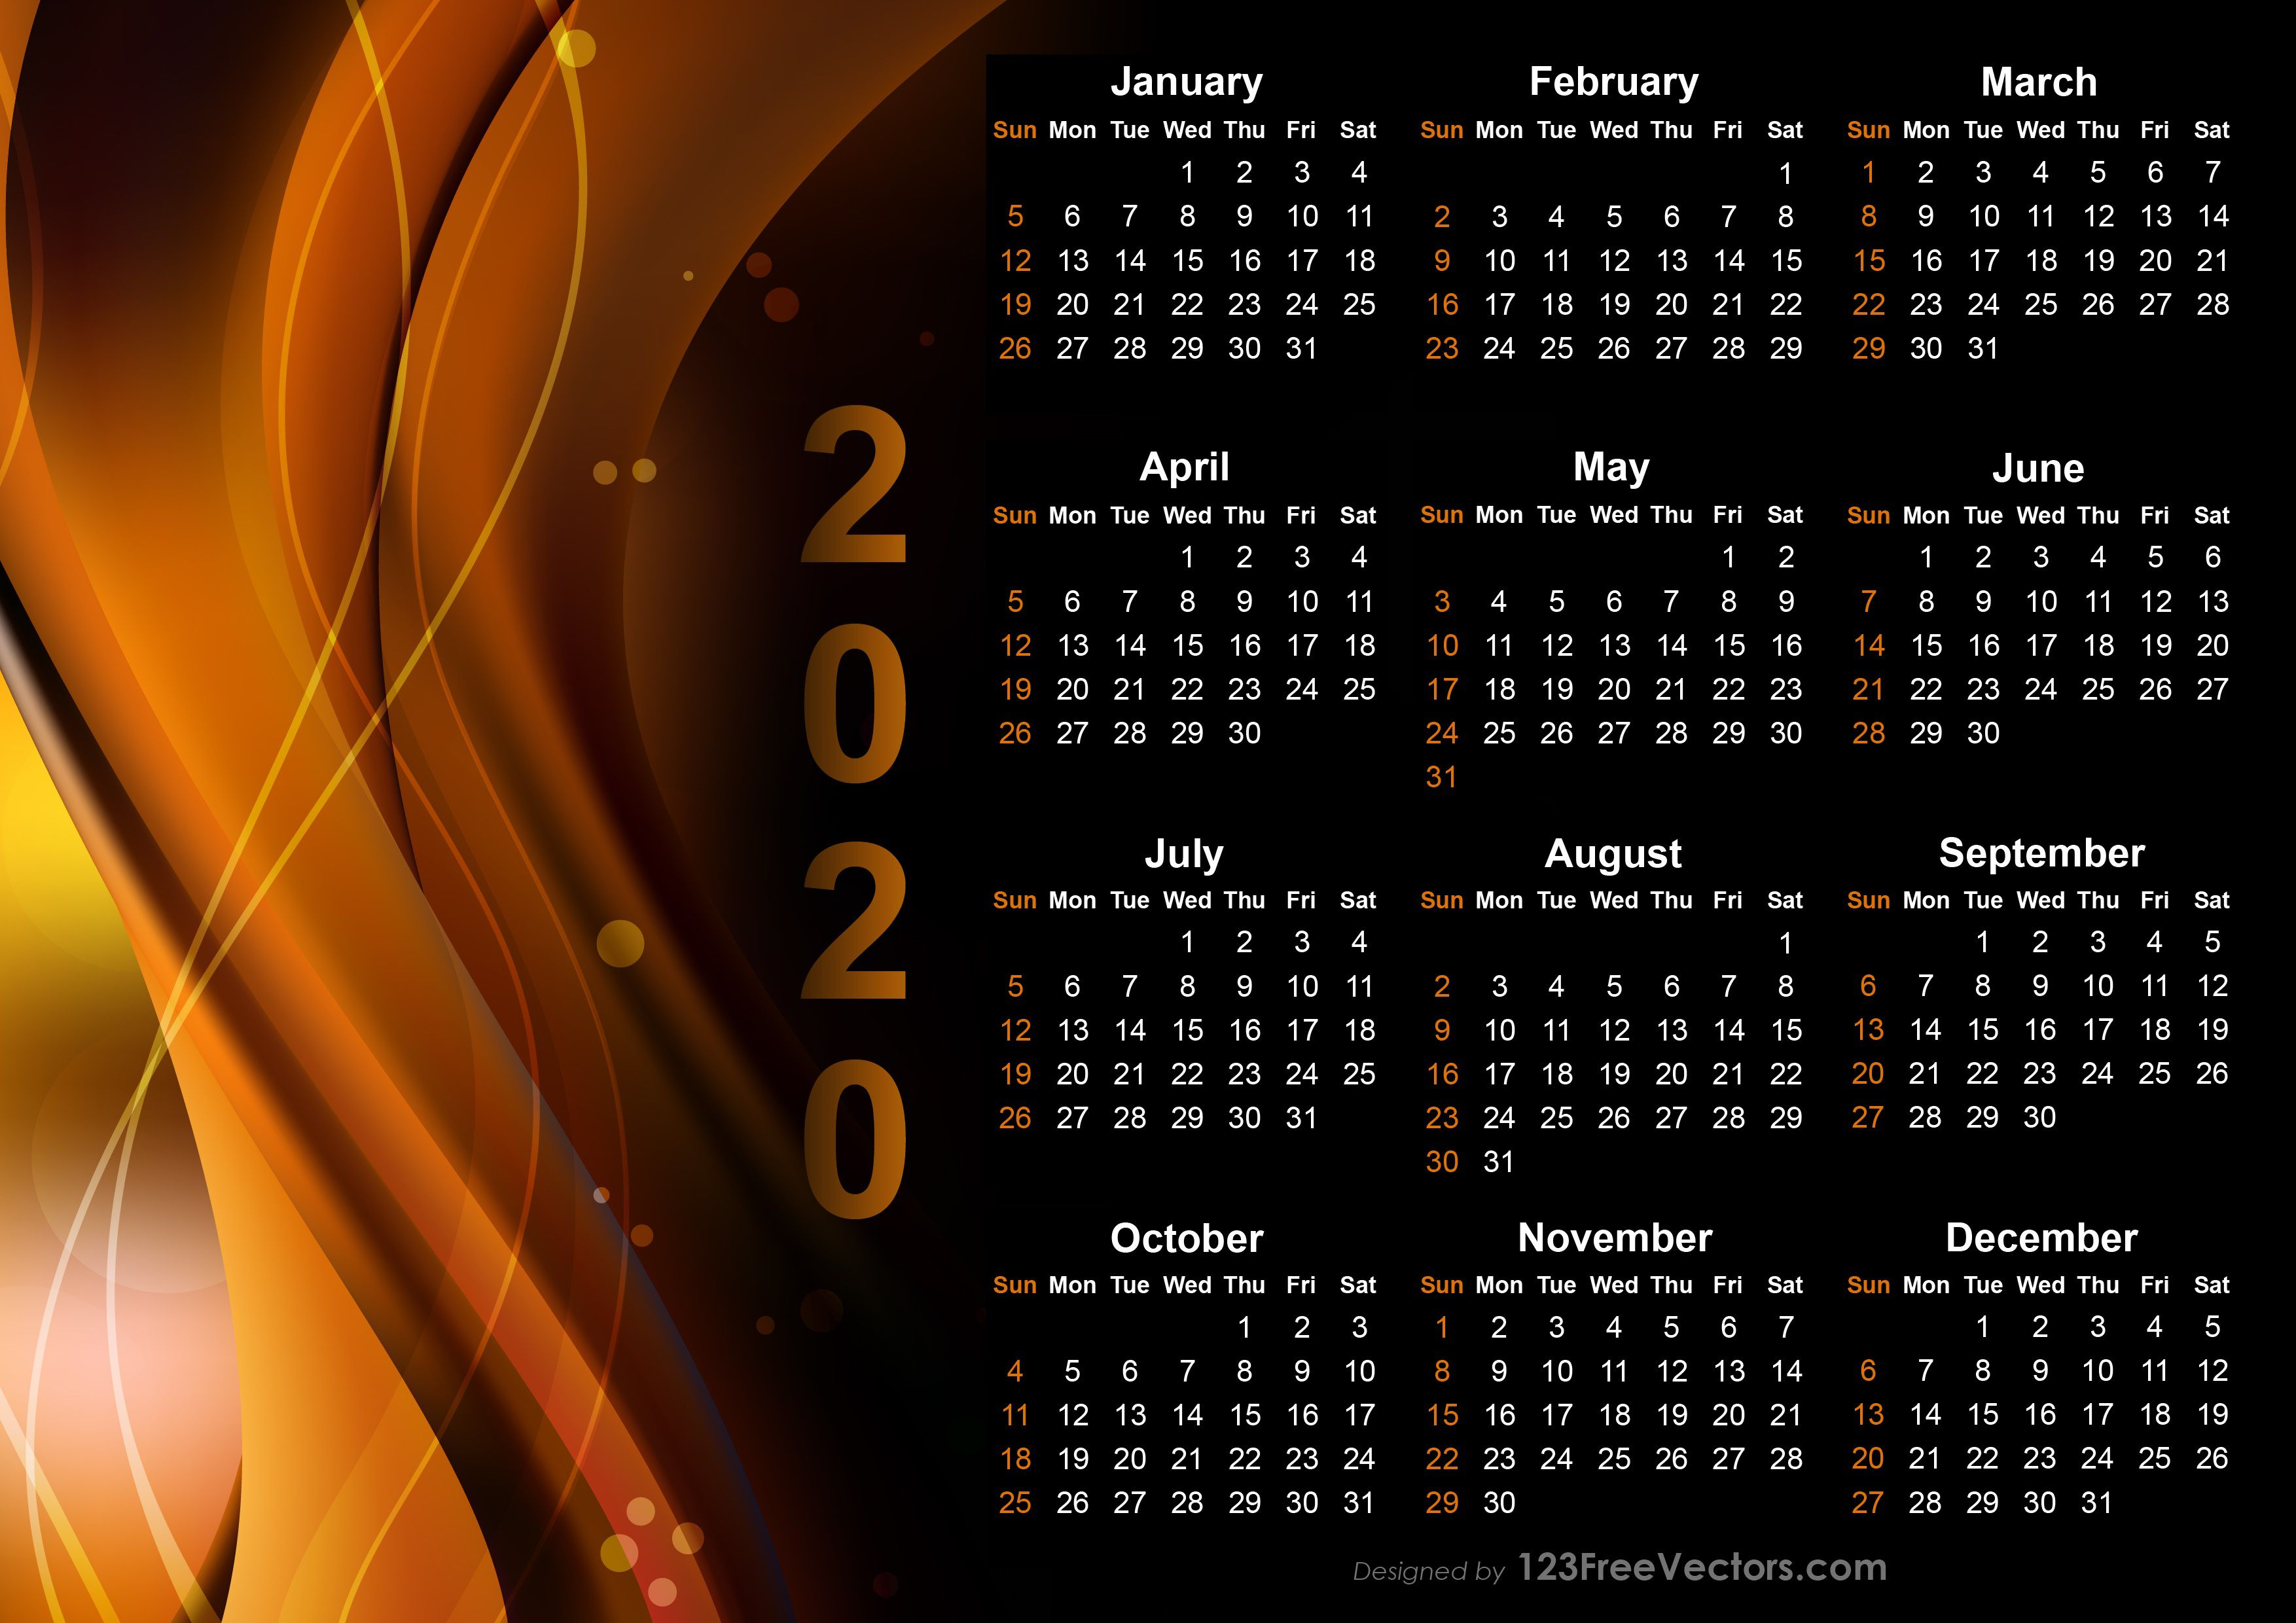 004 Astounding Calendar Template Free Download Picture  2020 Powerpoint Table Design 2019 MalaysiaFull